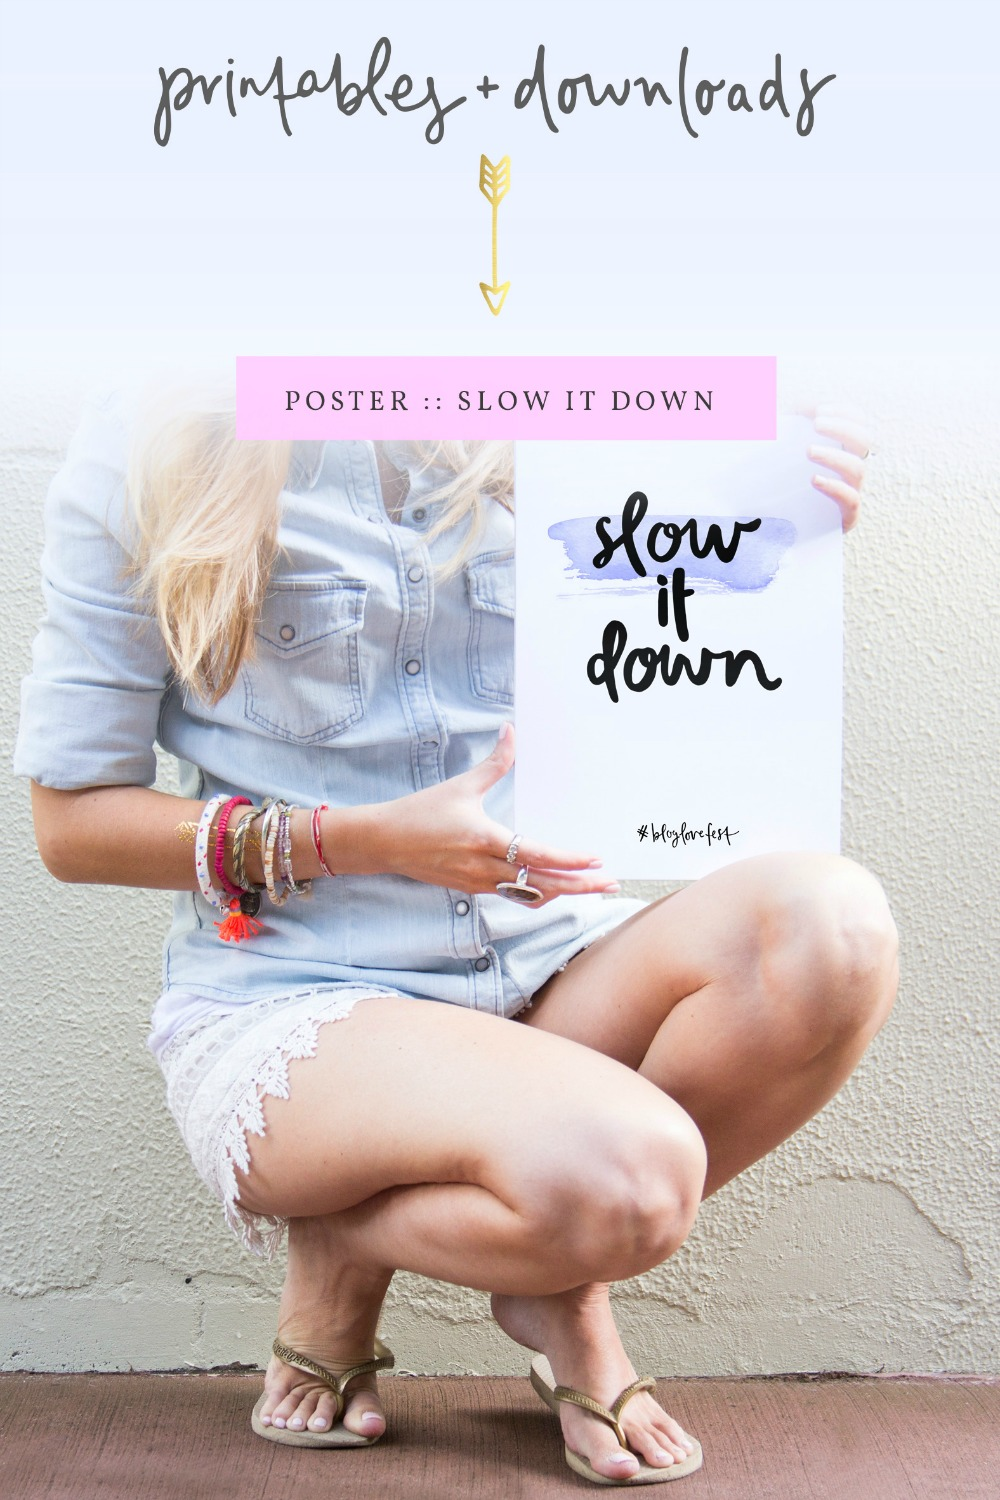 Slow Down Free Poster